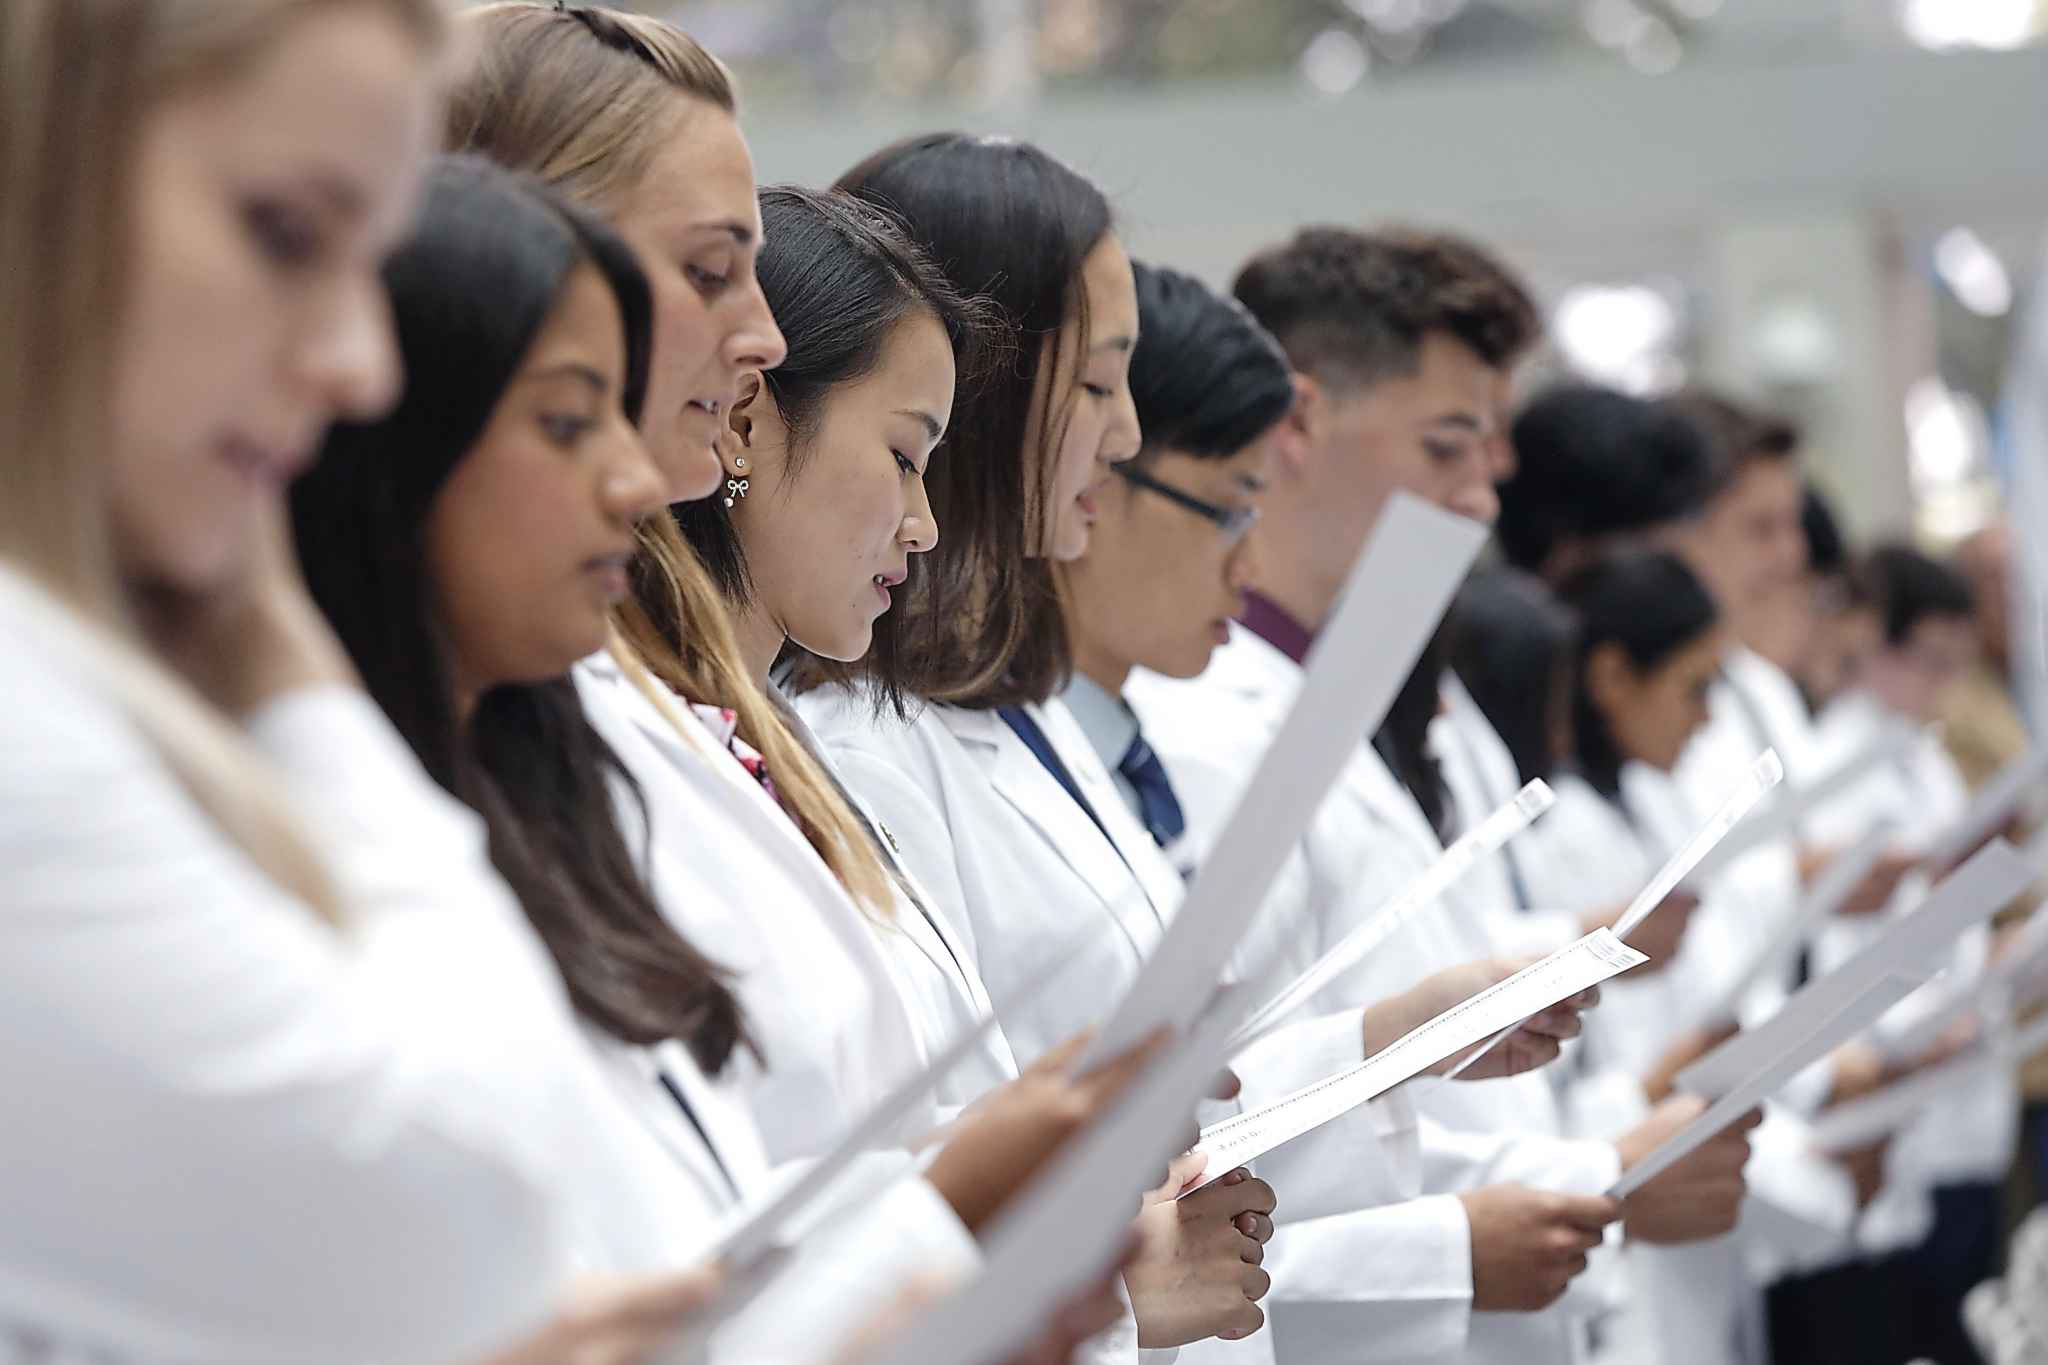 Medical students read the Hippocratic Oath at a White Coat Ceremony at the University of Manitoba. Brian Postl, the university's dean of medicine asked department heads to find contingency plans for filling medical shifts scheduled for 20 Saudi residents and fellows.